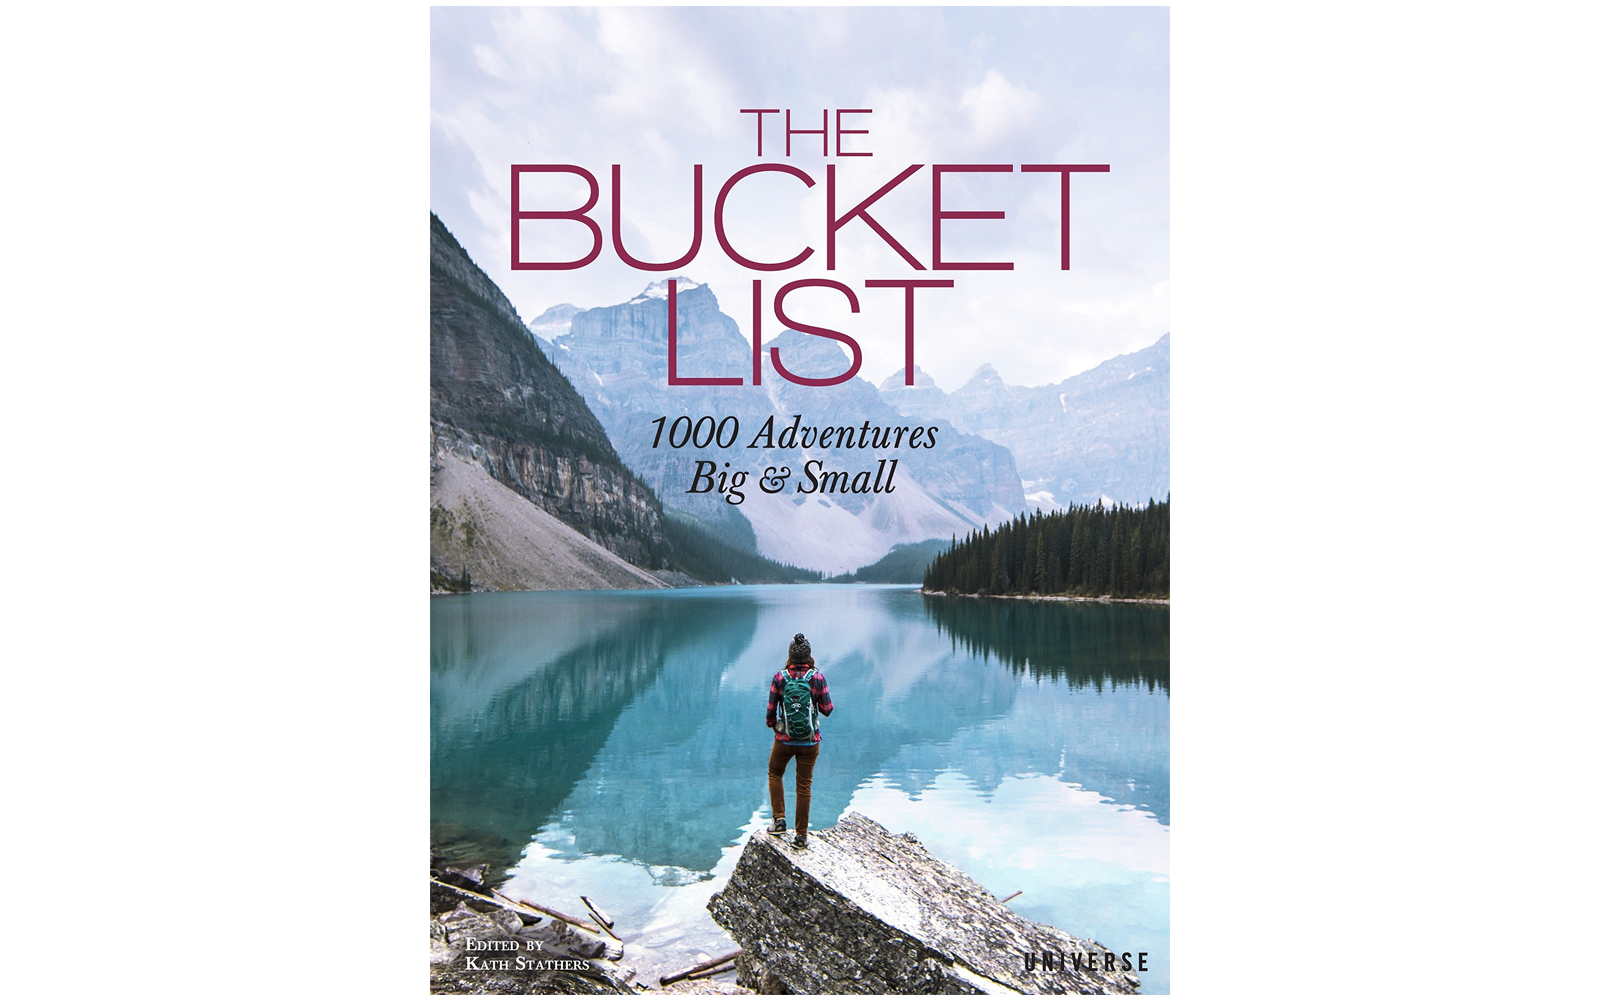 The Bucket List: 1000 Adventures Big & Small by Kath Stathers